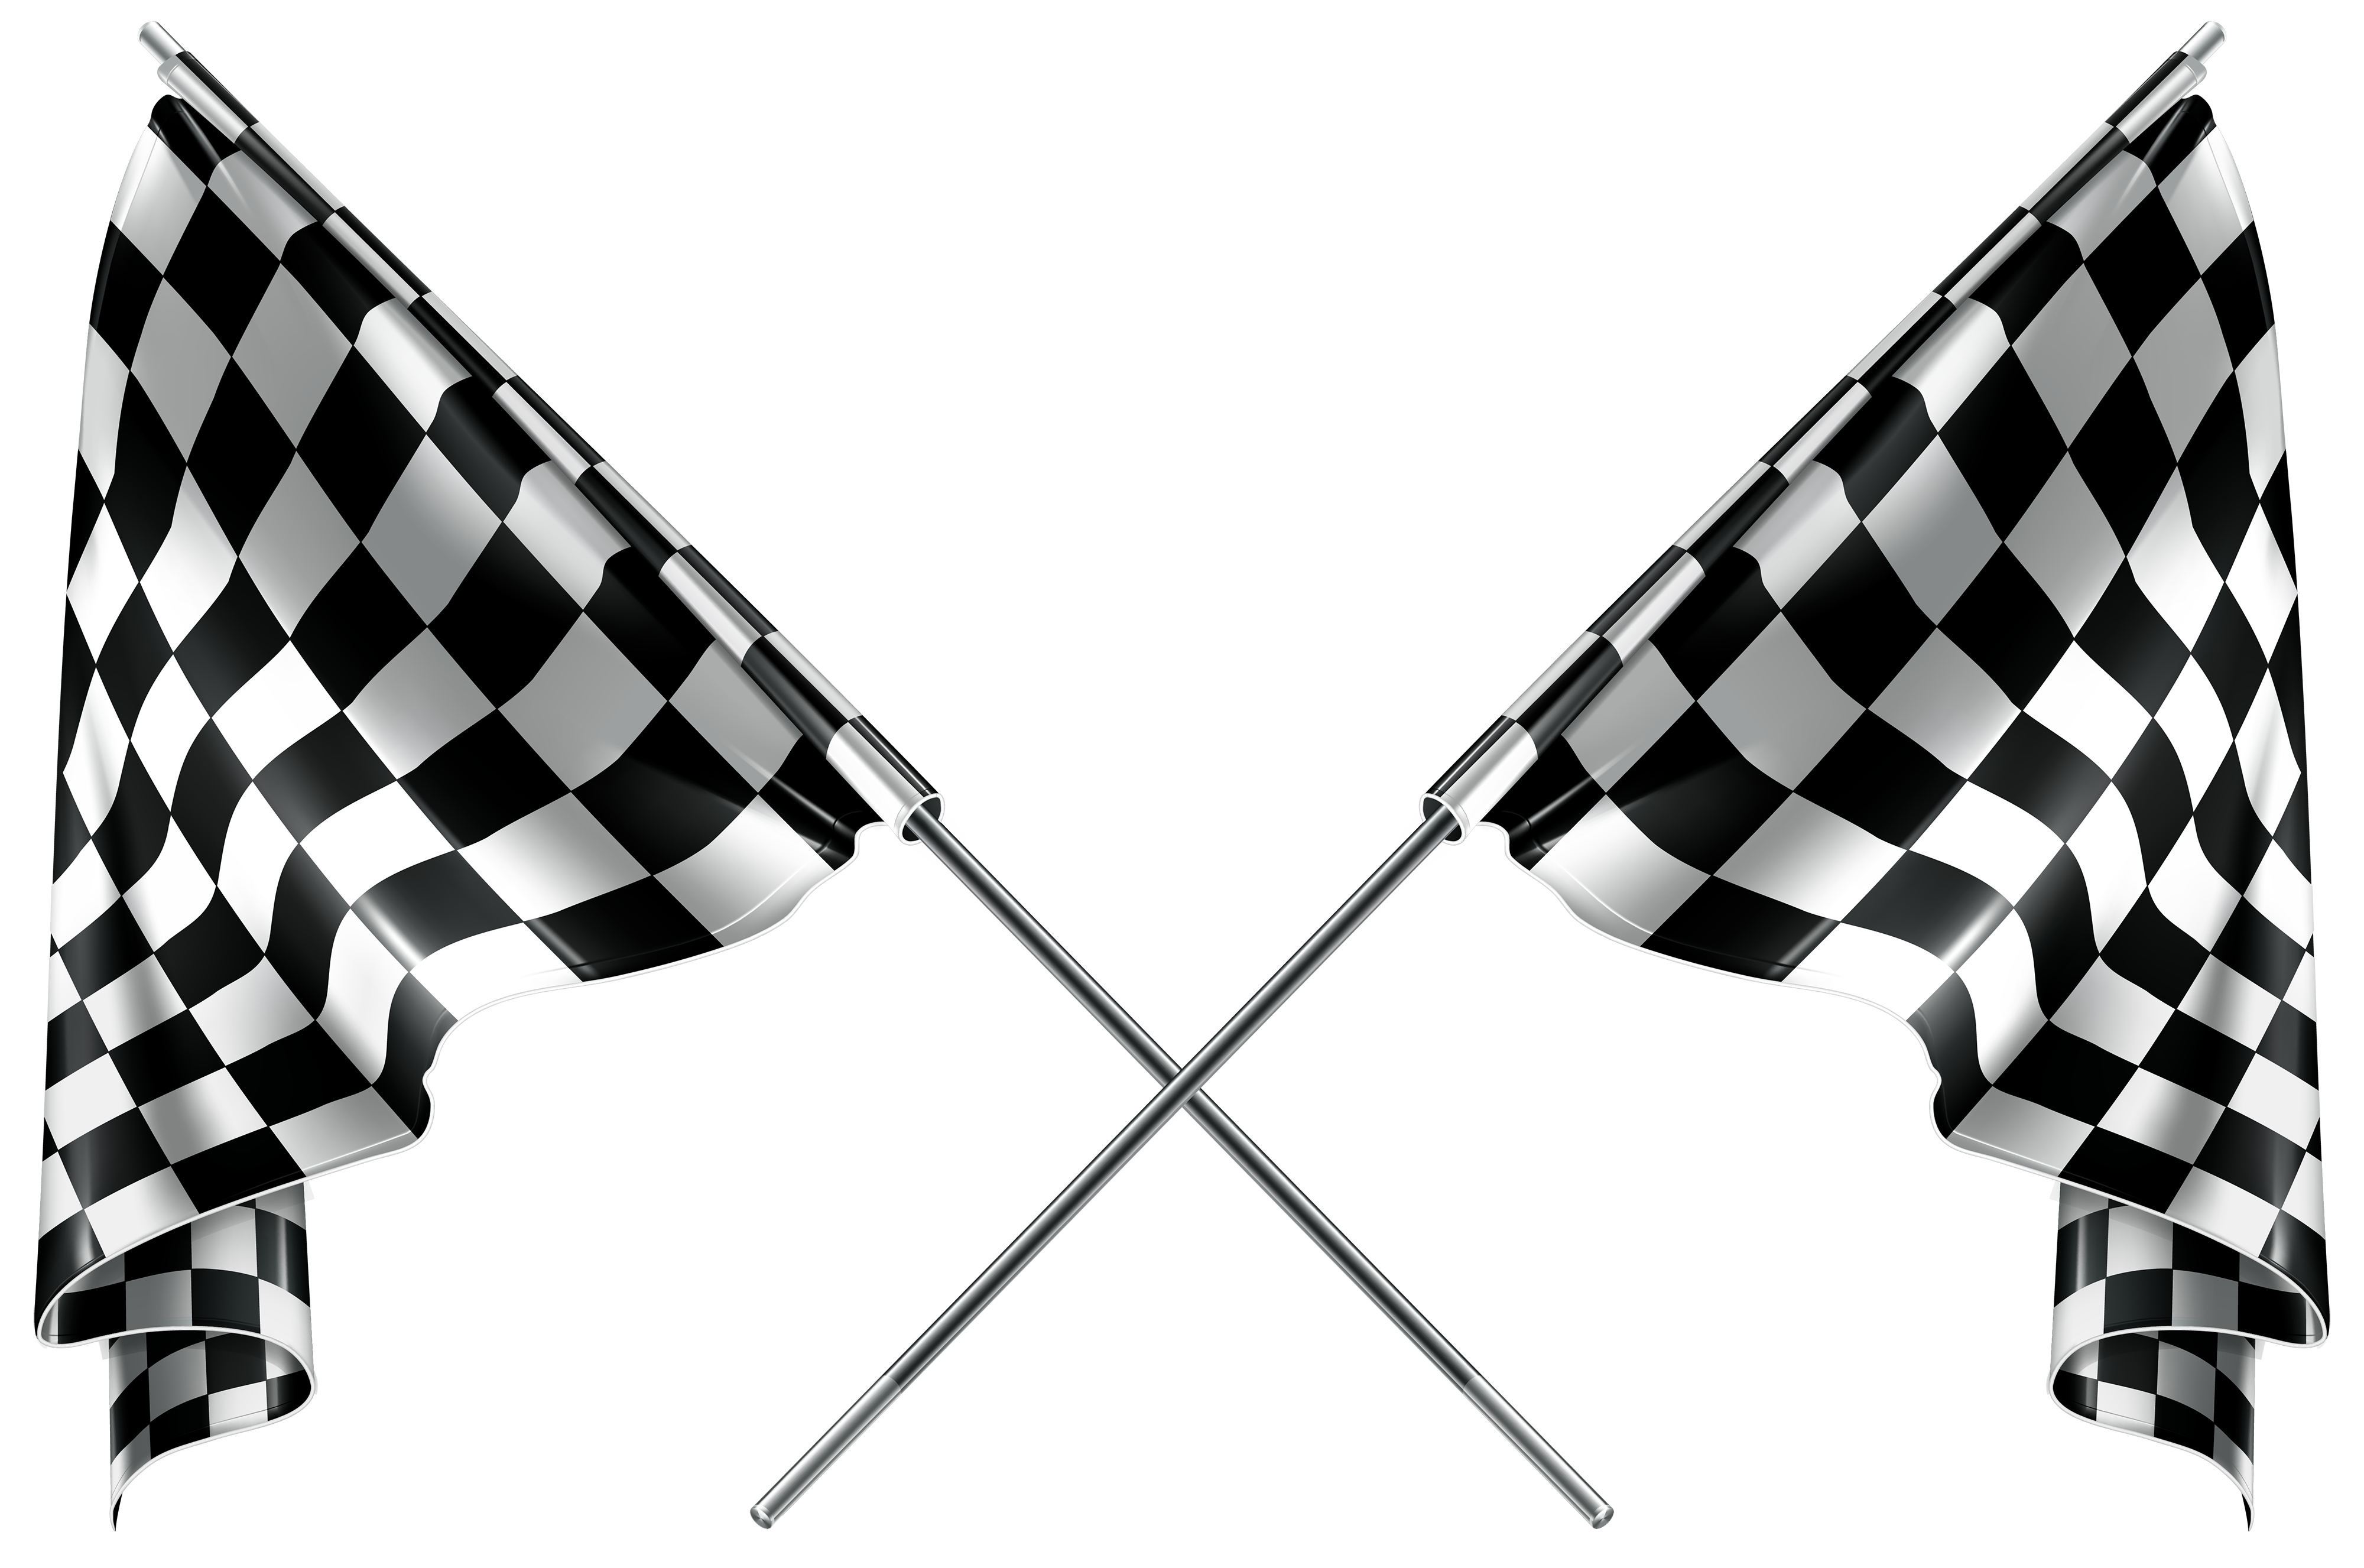 Flags clipart sport. Checkered png best web